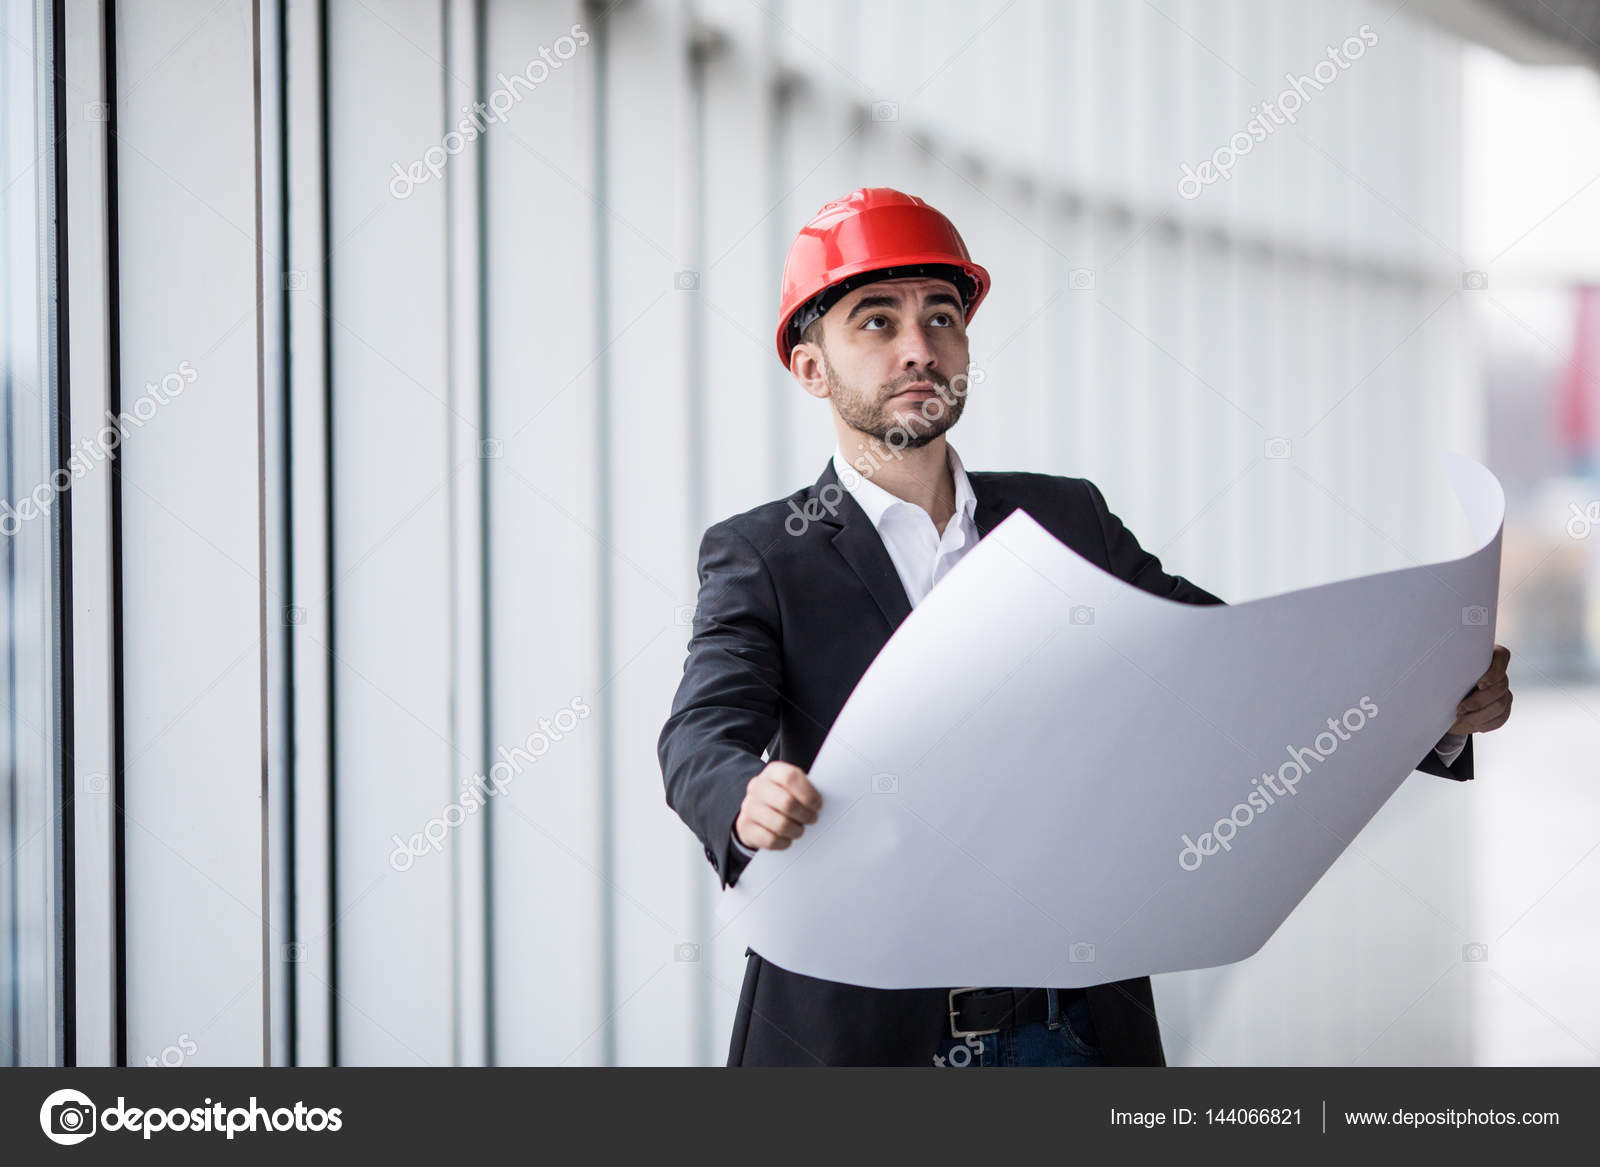 Portrait Of An Architect Builder Studying Layout Plan Of The Building,  Serious Civil Engineer Working